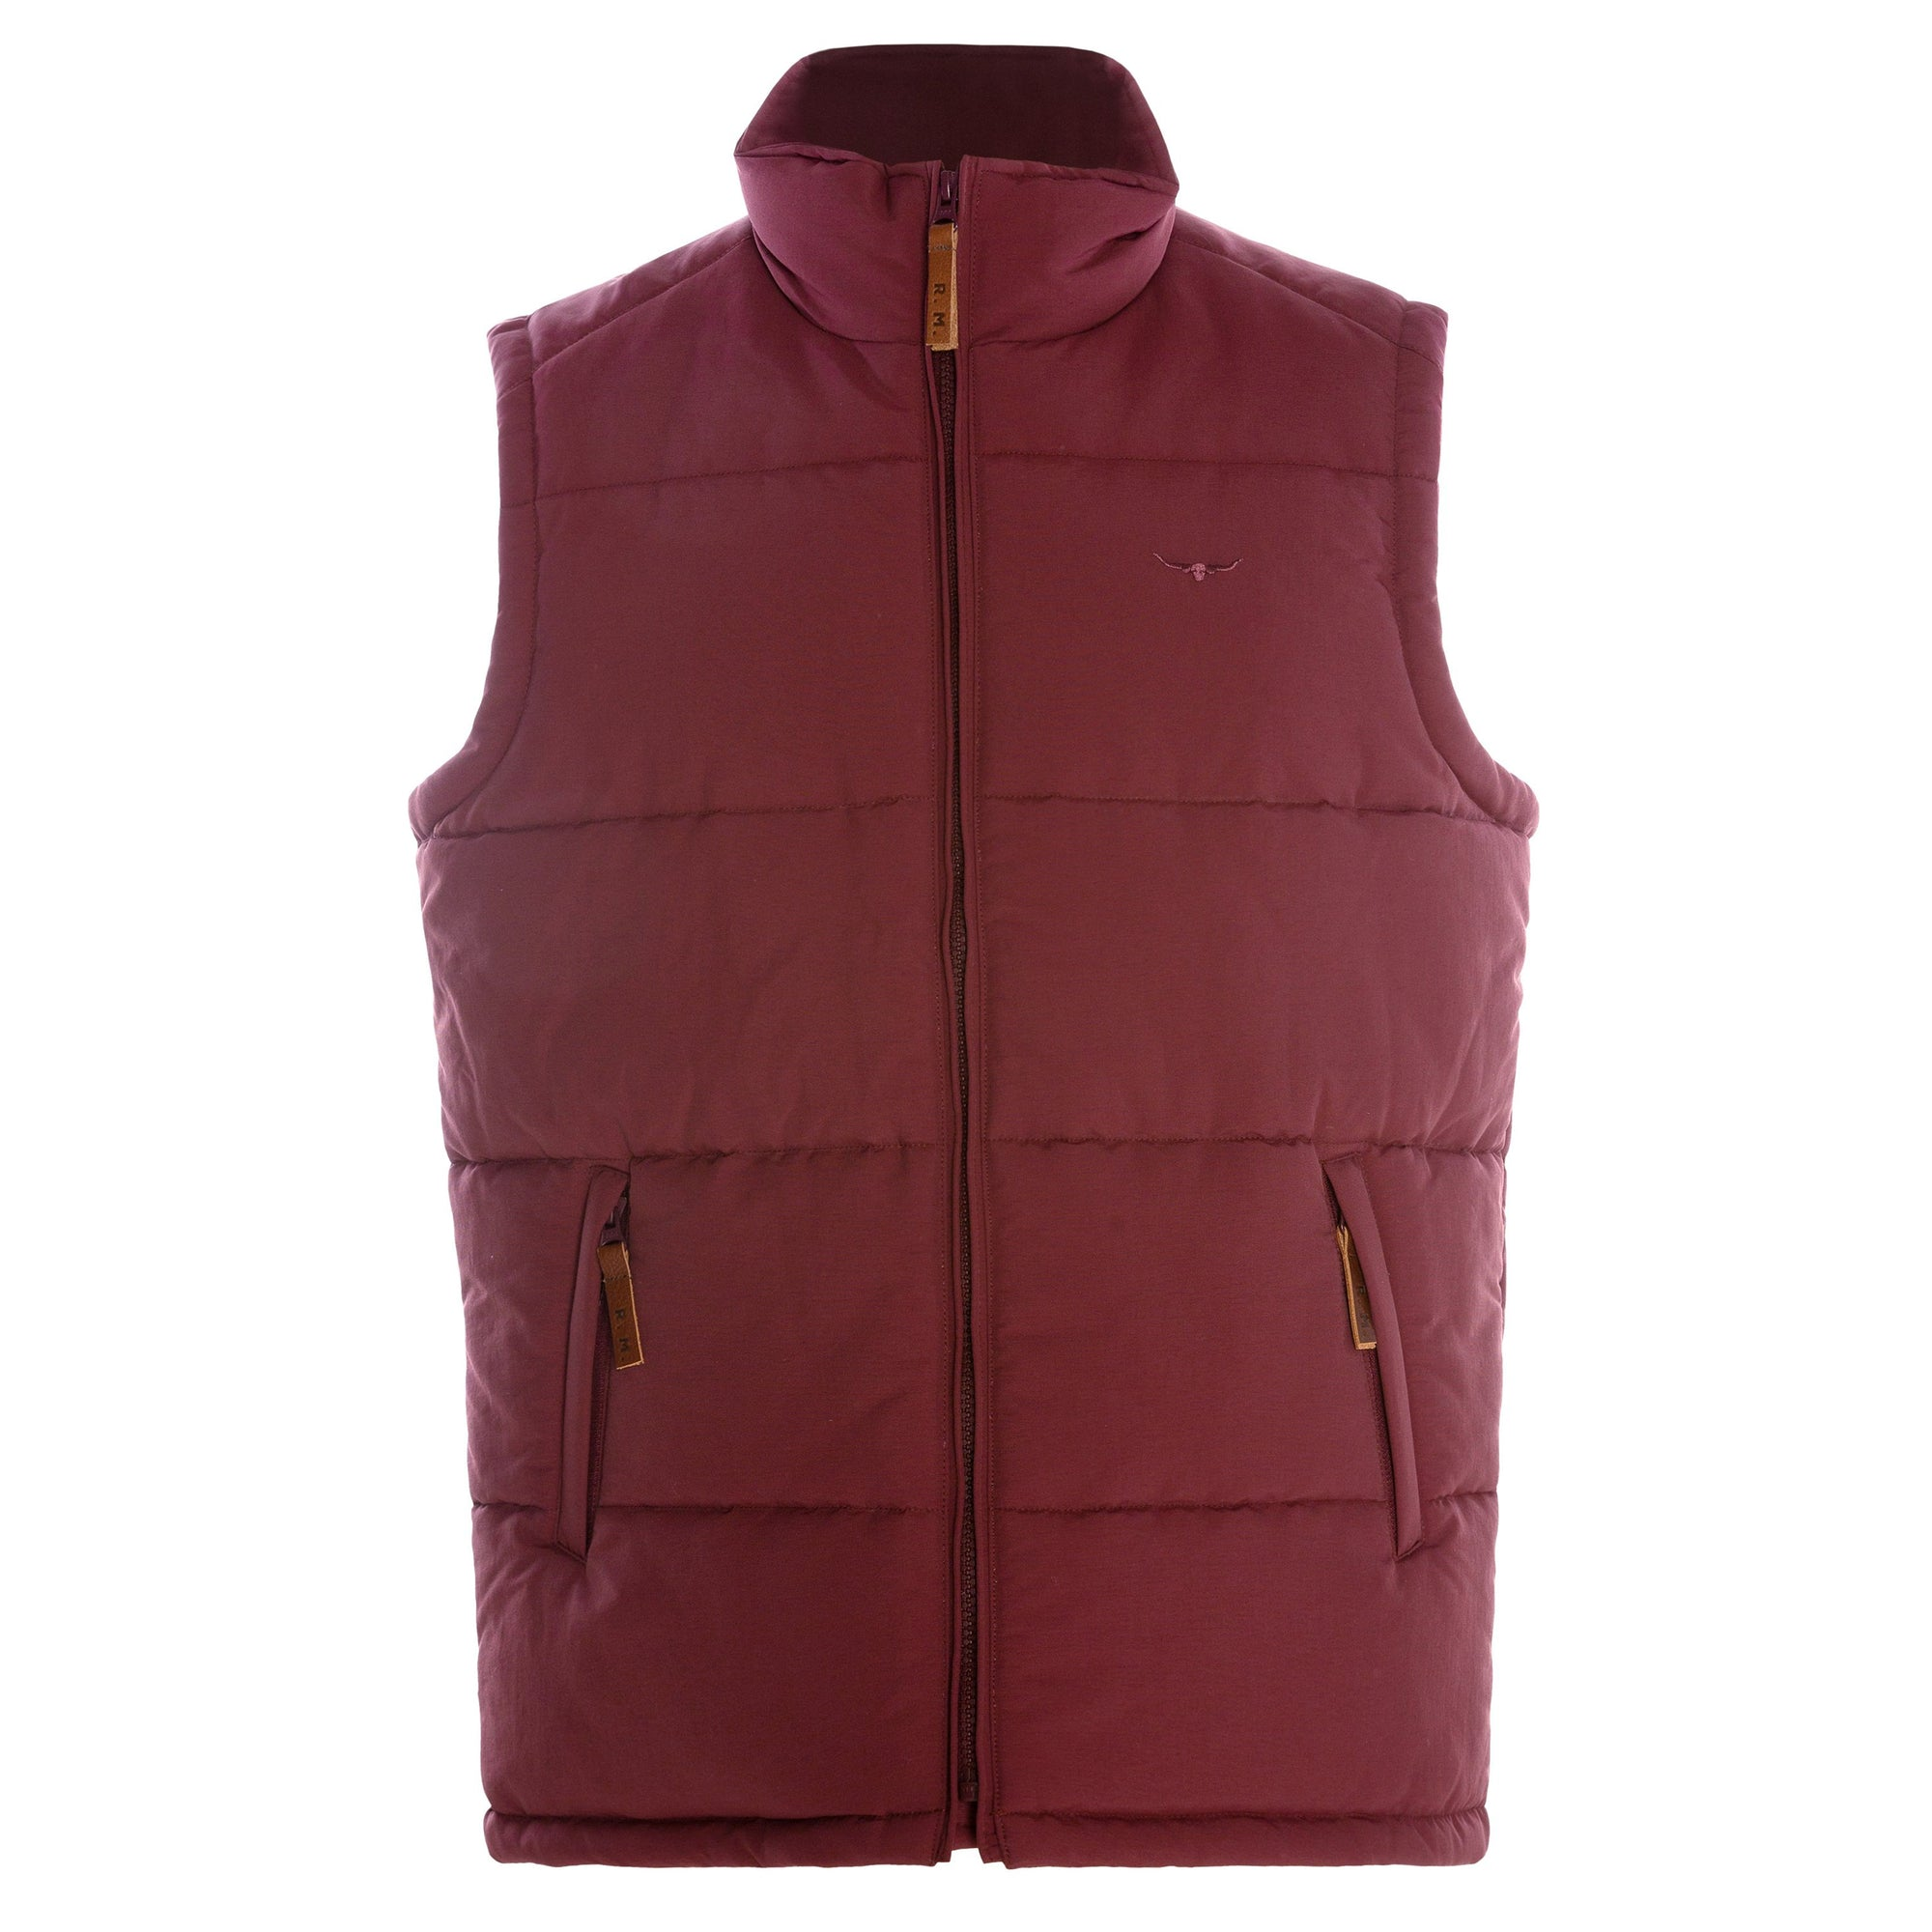 RM Williams Patterson Creek Vest (4498969395337)